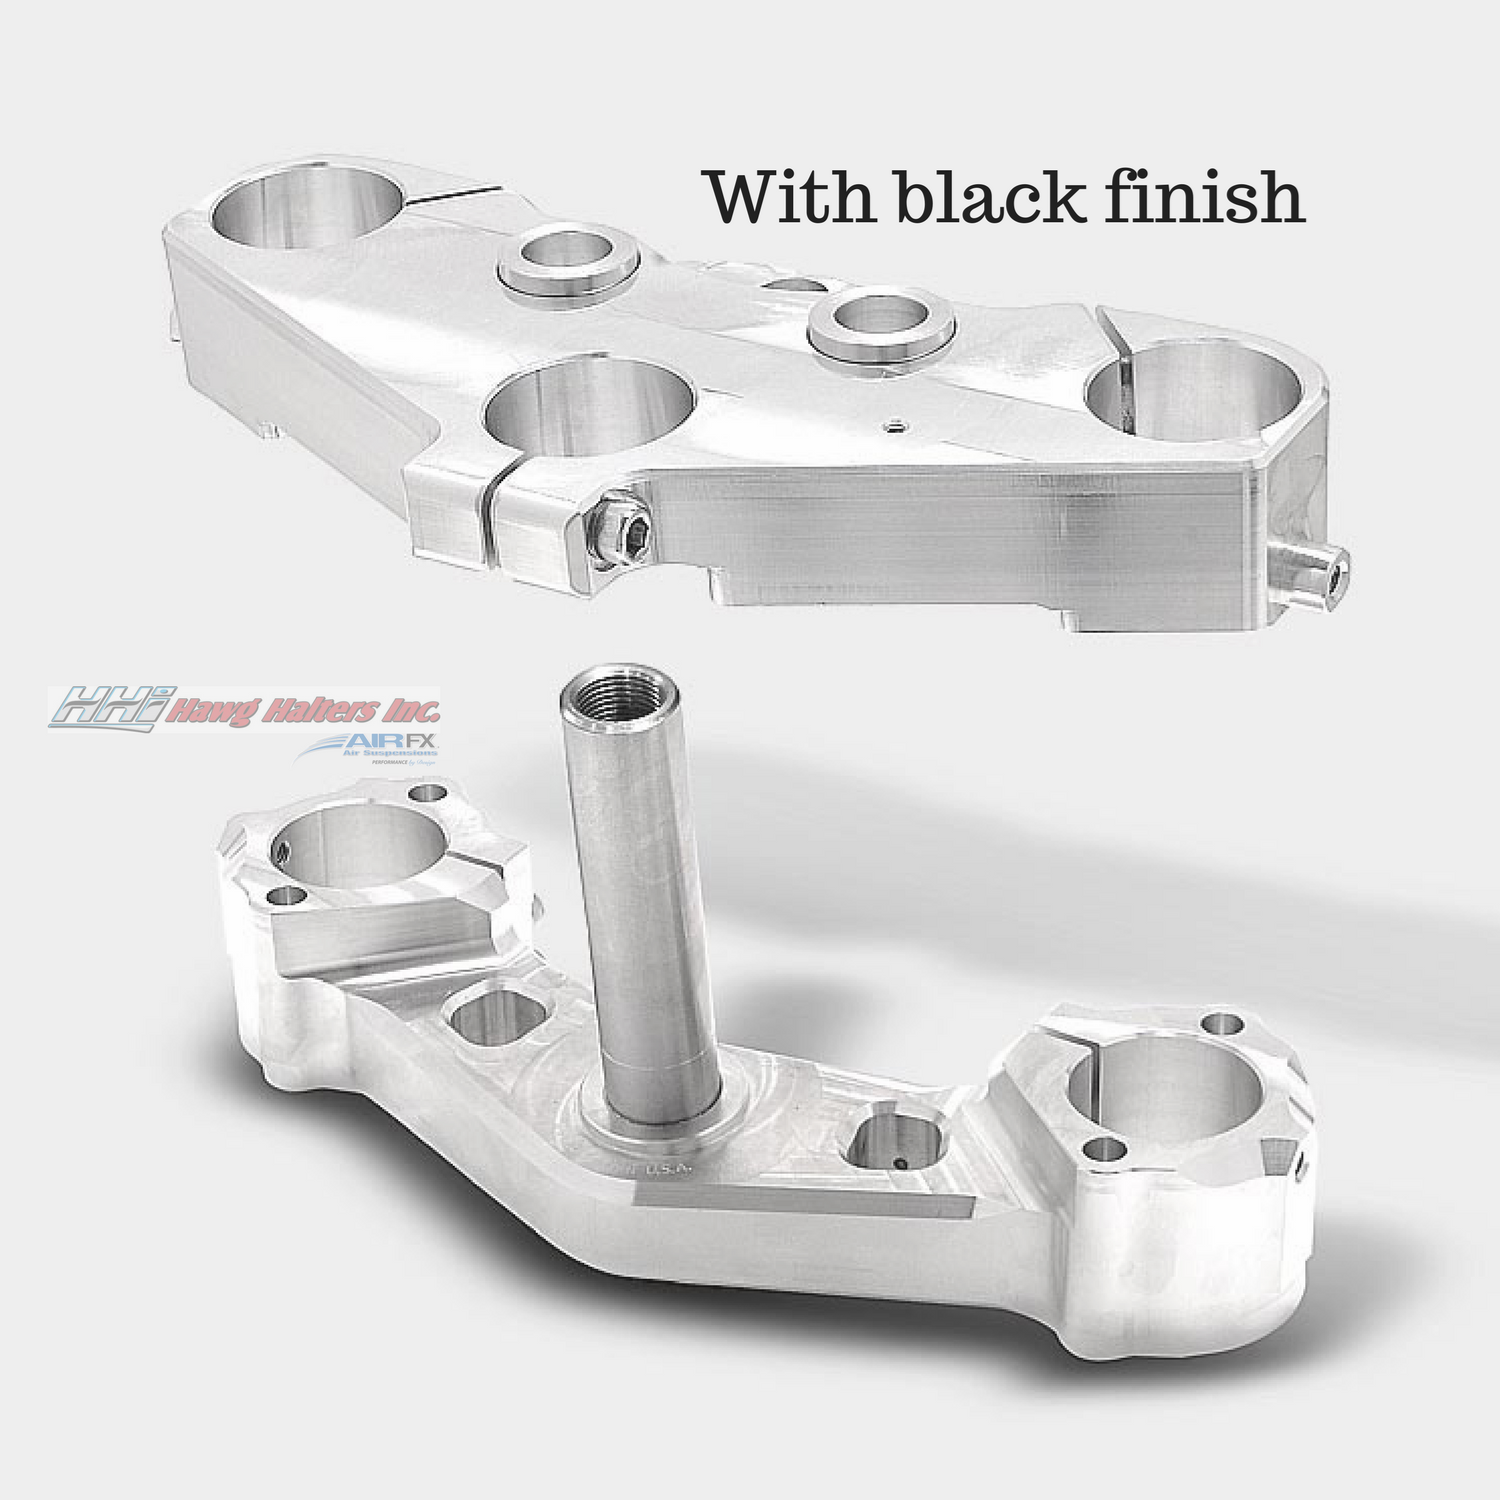 Bolt-On triple tree kit for a 23 '' wheel. Black anodized. Fits 2014-2018 FL touring (49FLAX23) [+$829.00]